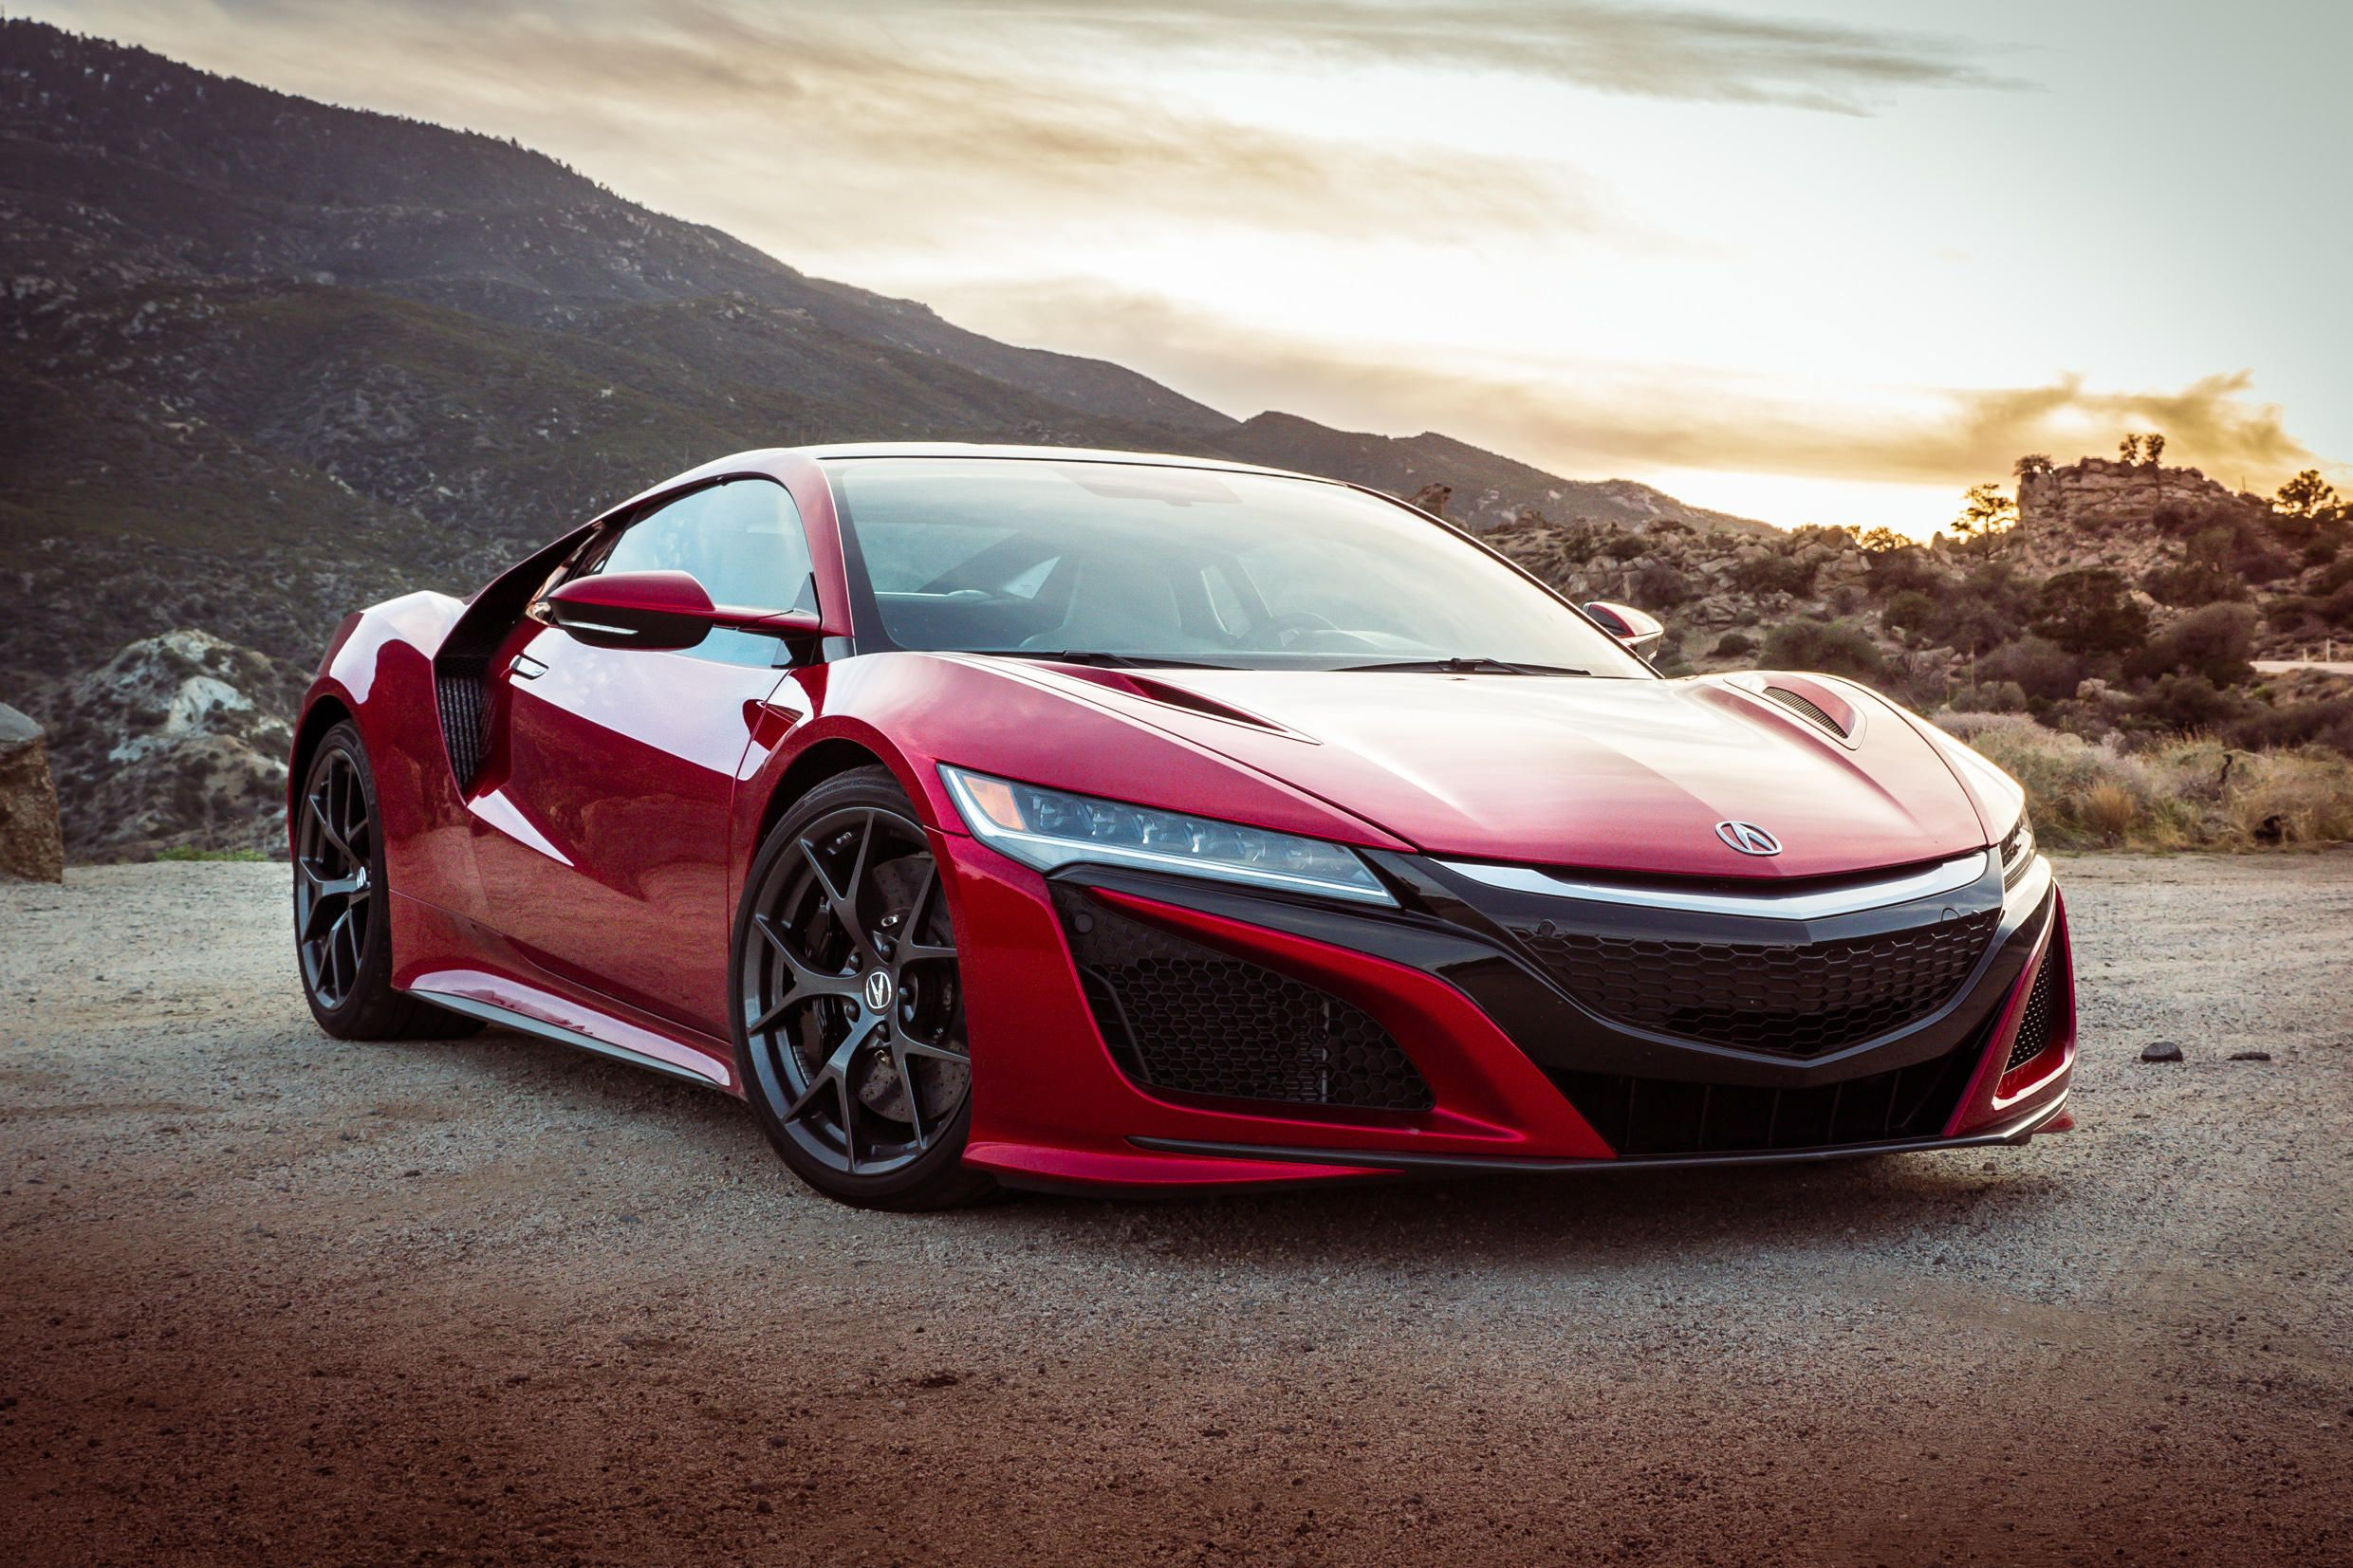 Acura Nsx Wallpapers Top Free Acura Nsx Backgrounds